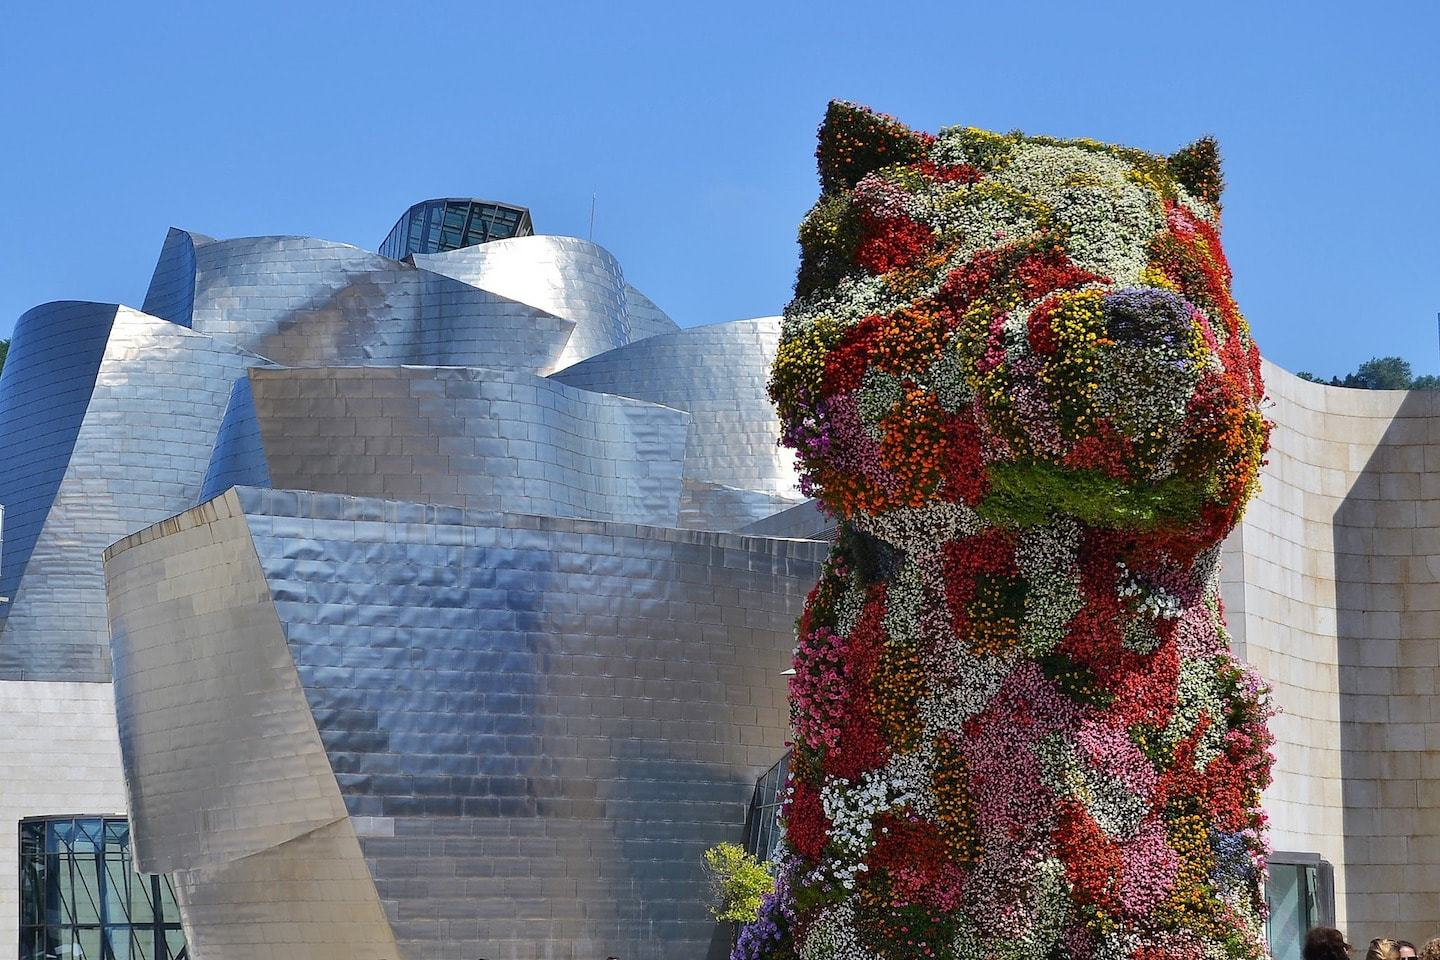 big sculpture of dog with flowers on it with modern metal building behind